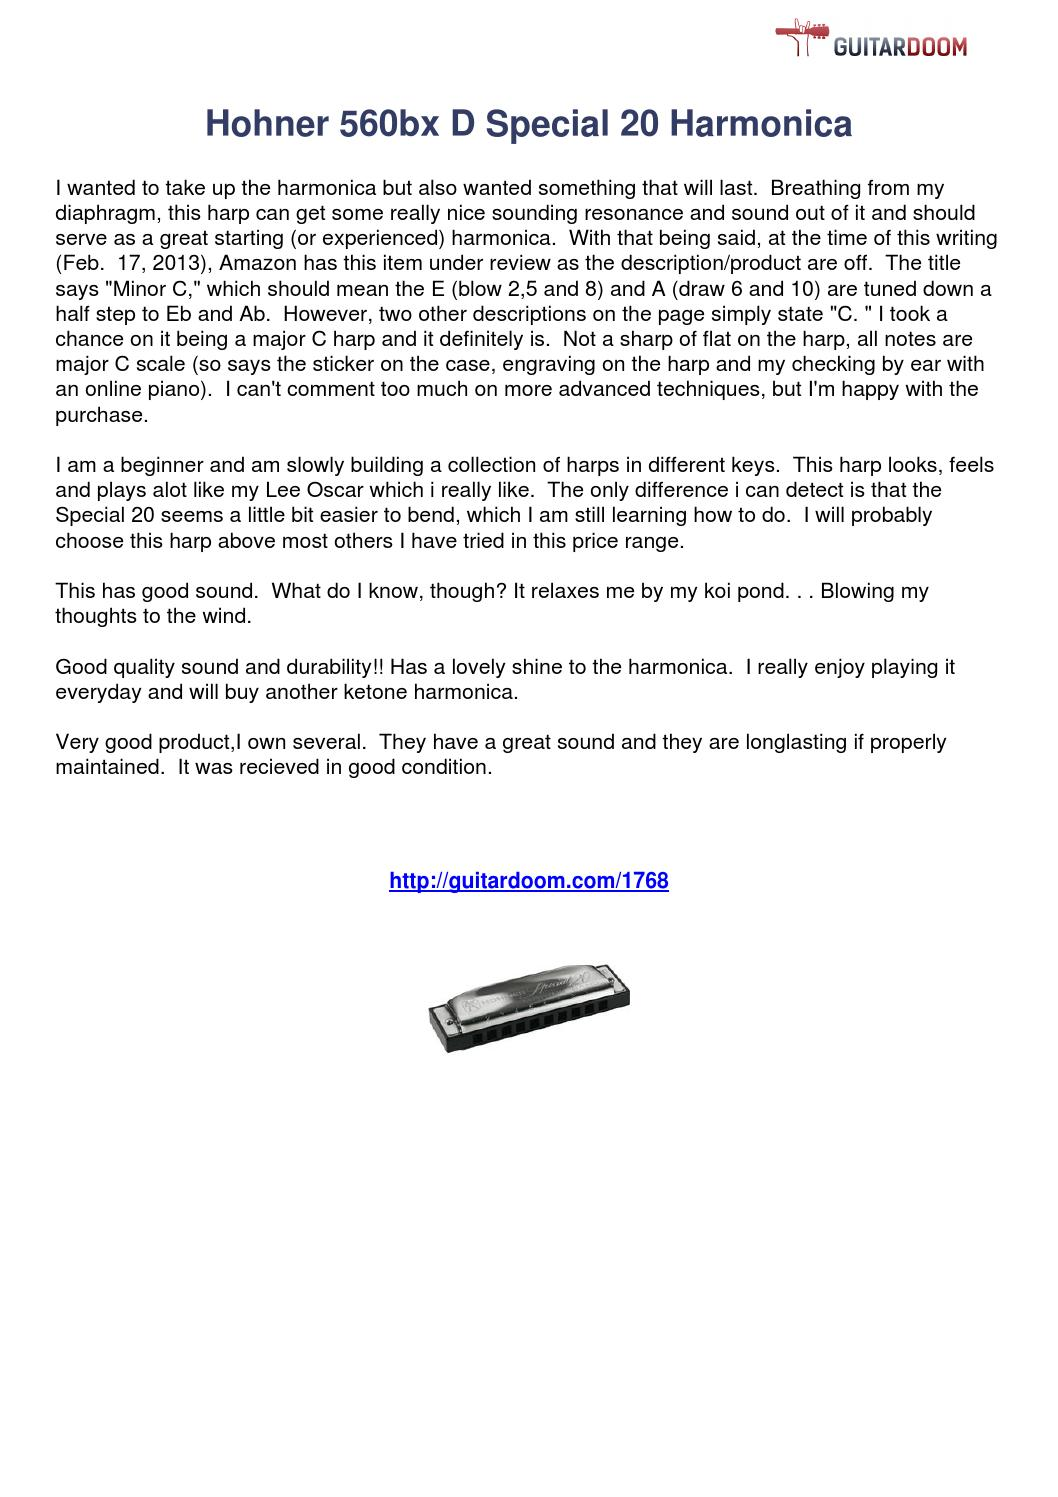 hohner special 20 harmonica review